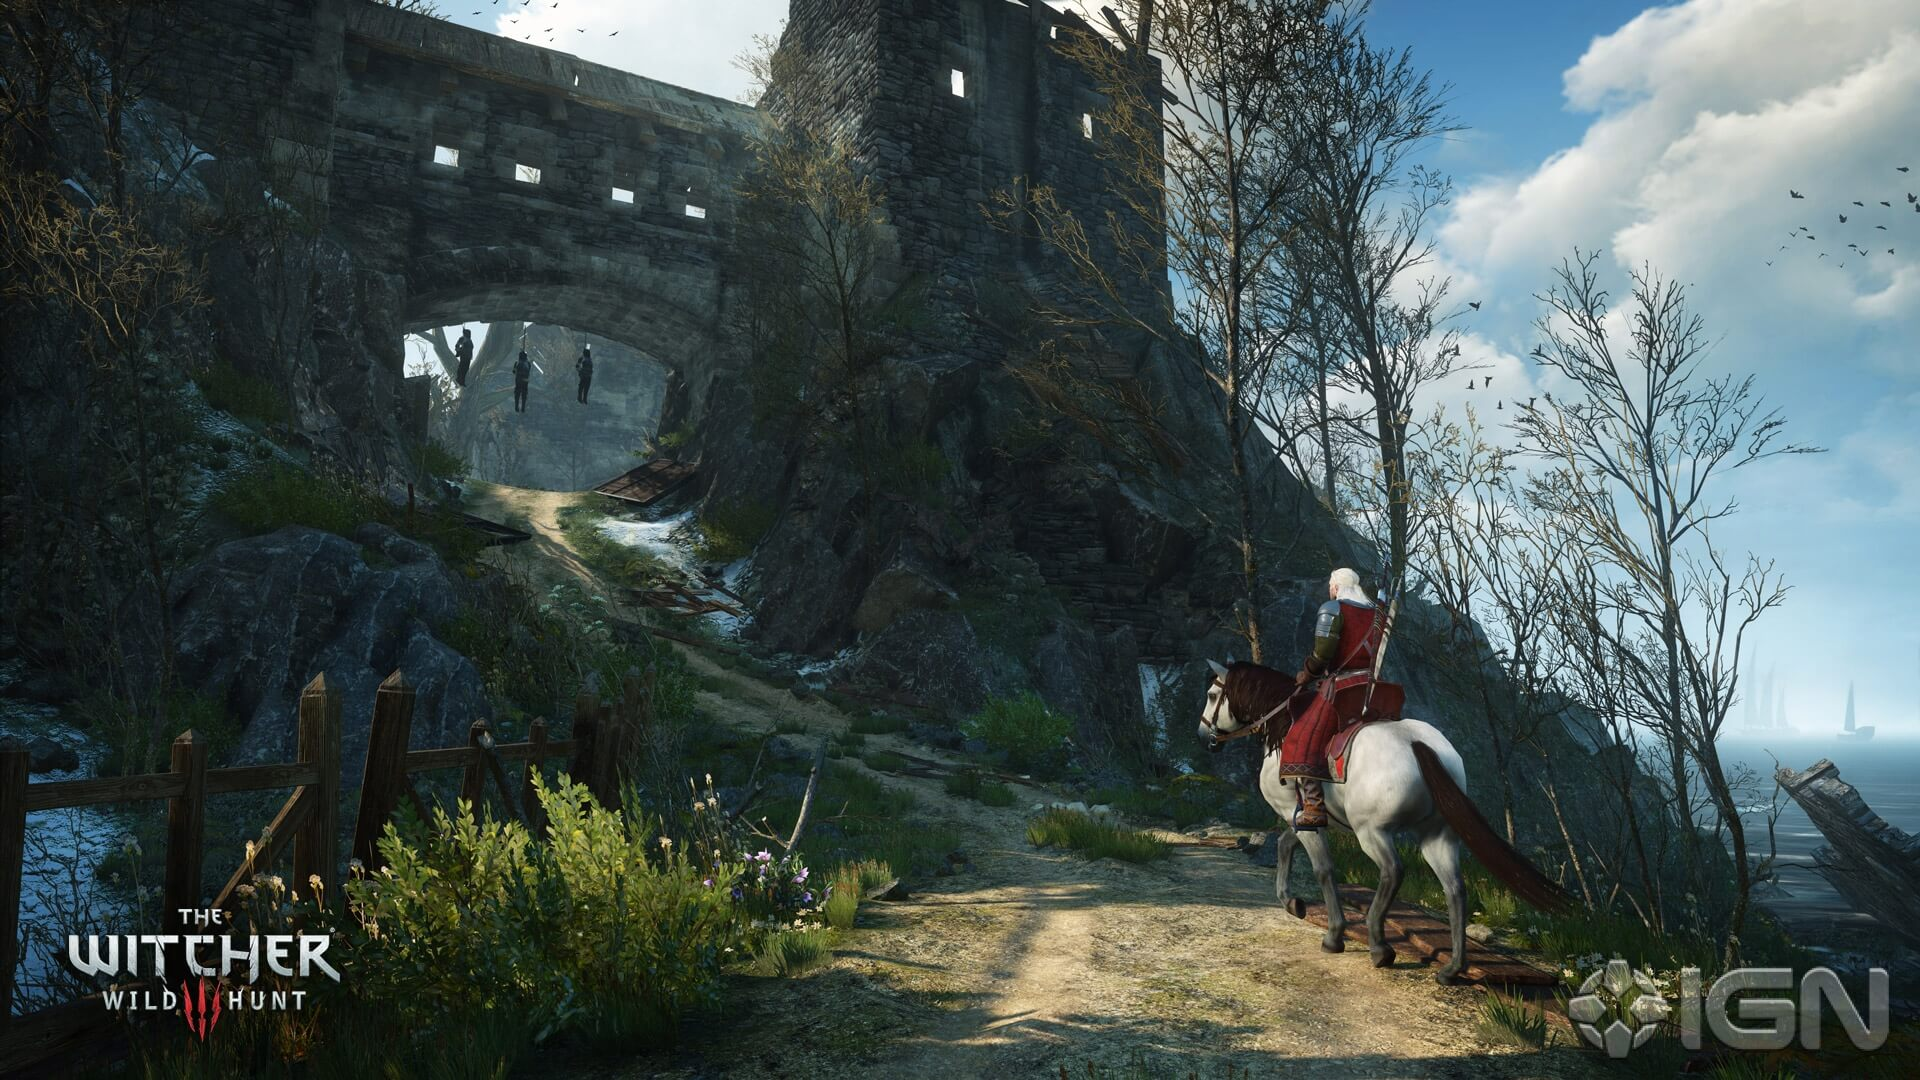 The Witcher 3: Wild Hunt Hanging Screenshot